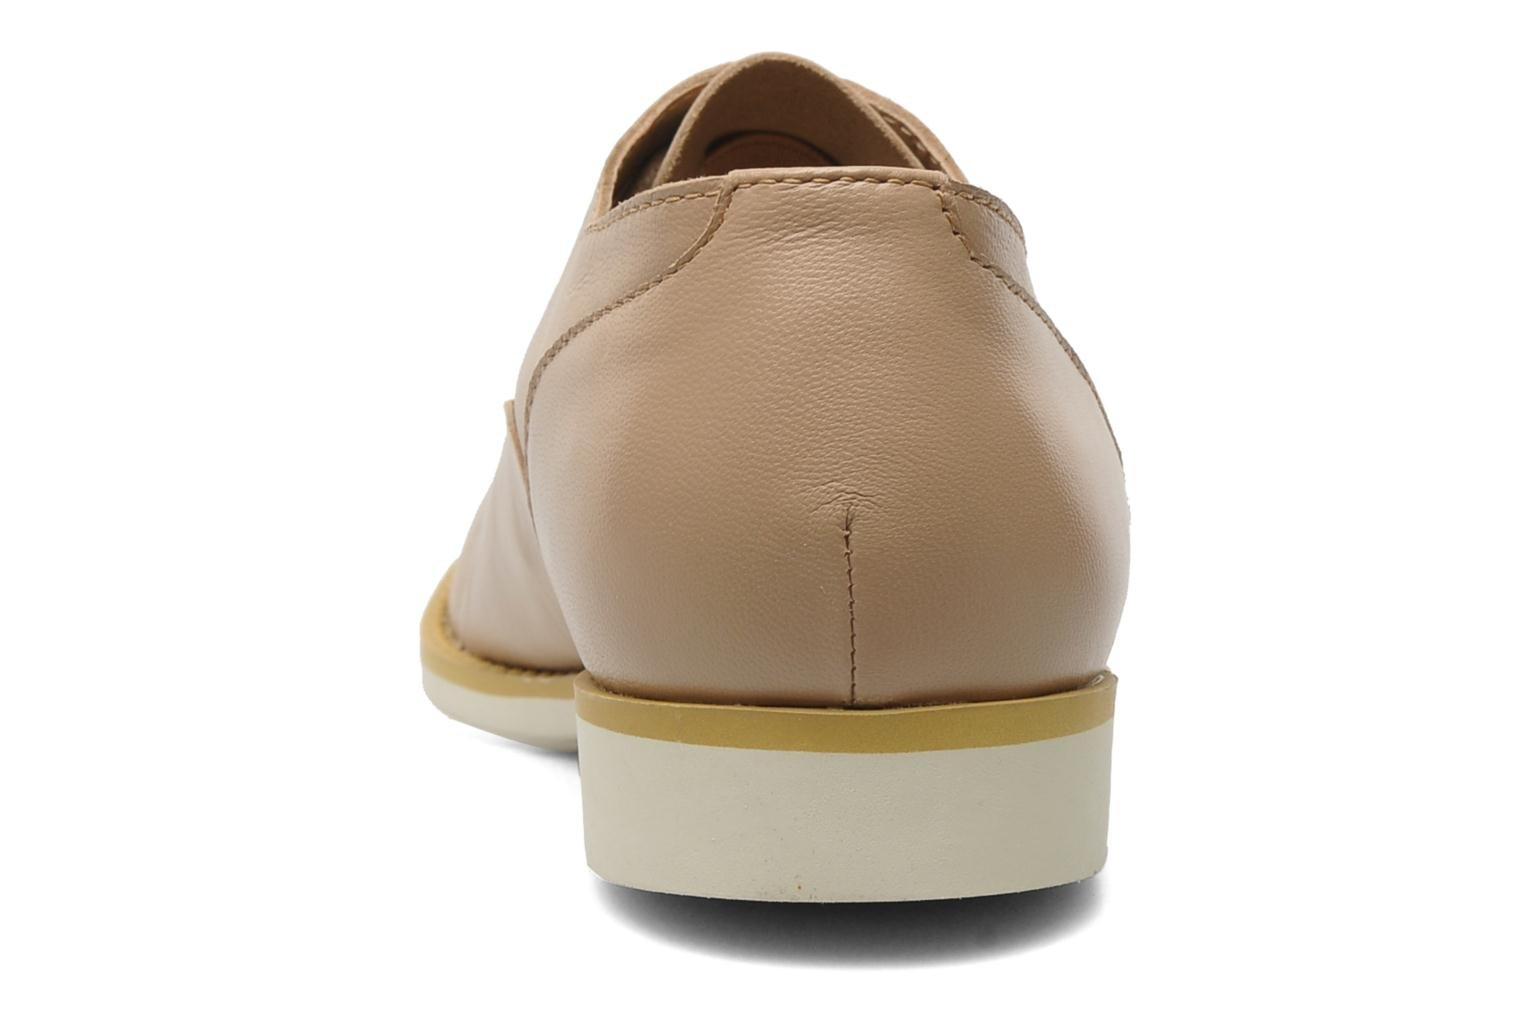 KEDIENG Toffee Leather